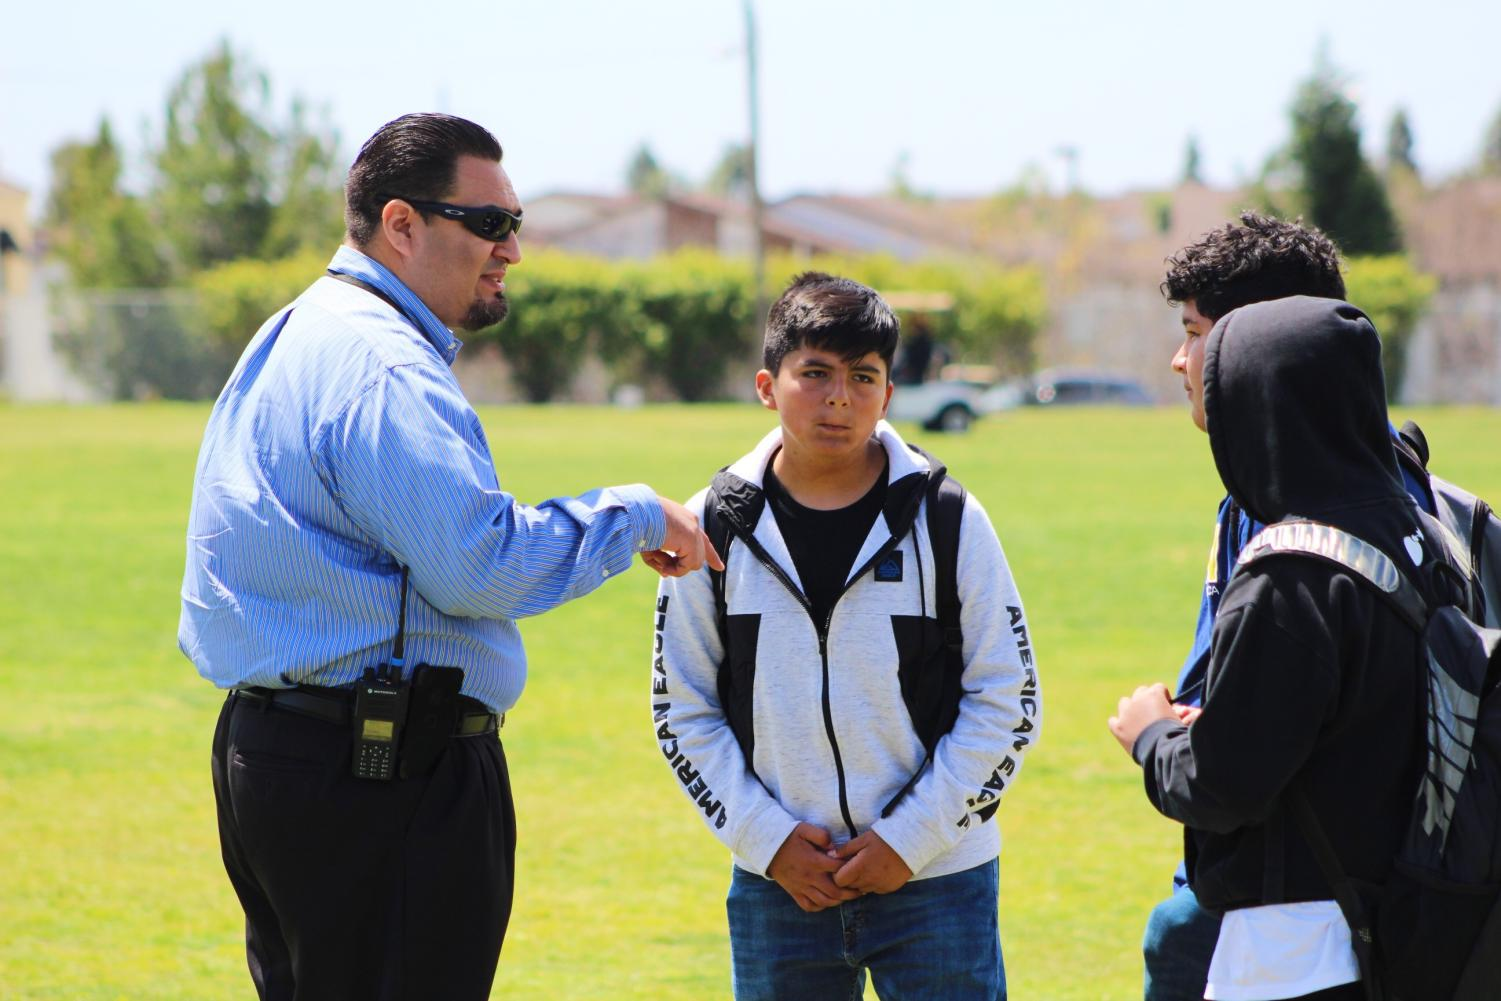 Assistant principal, Carlos Saucedo, tells a group of freshman to leave the field during a walk-out, while he had told others if they were on the field that they couldn't leave.